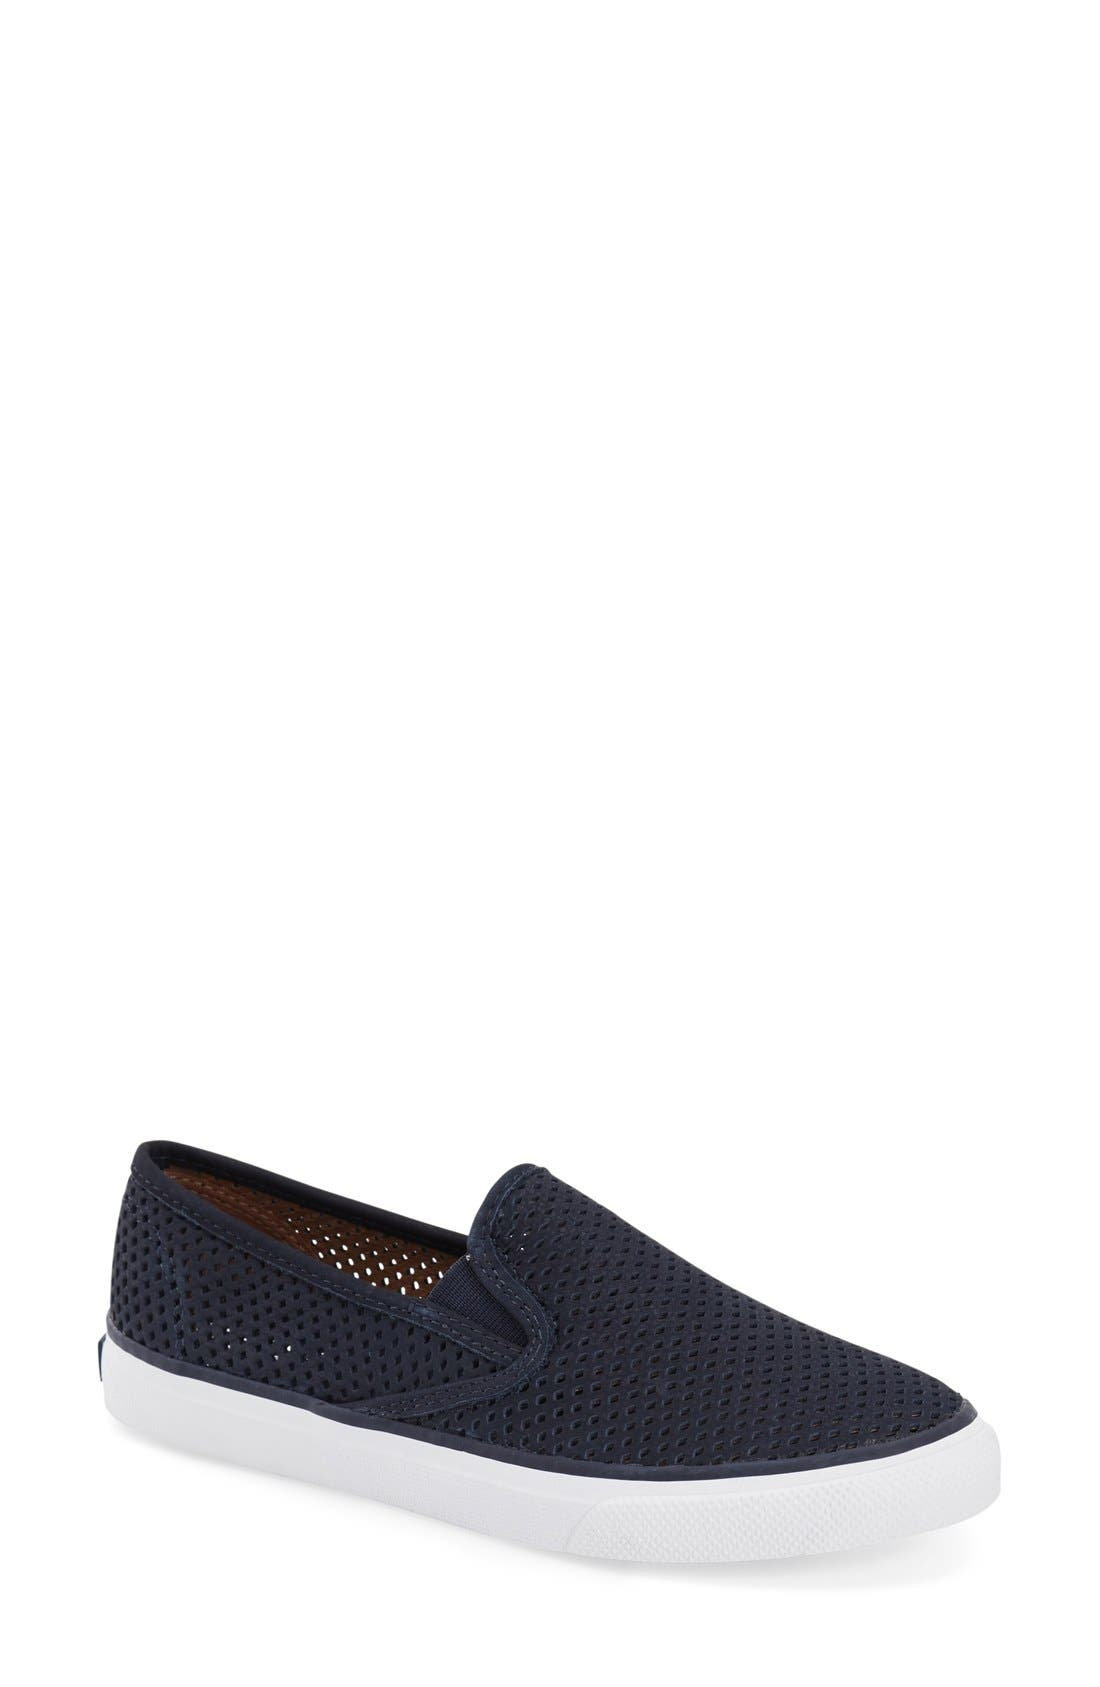 Main Image - Sperry 'Seaside' Perforated Slip-On Sneaker (Women)